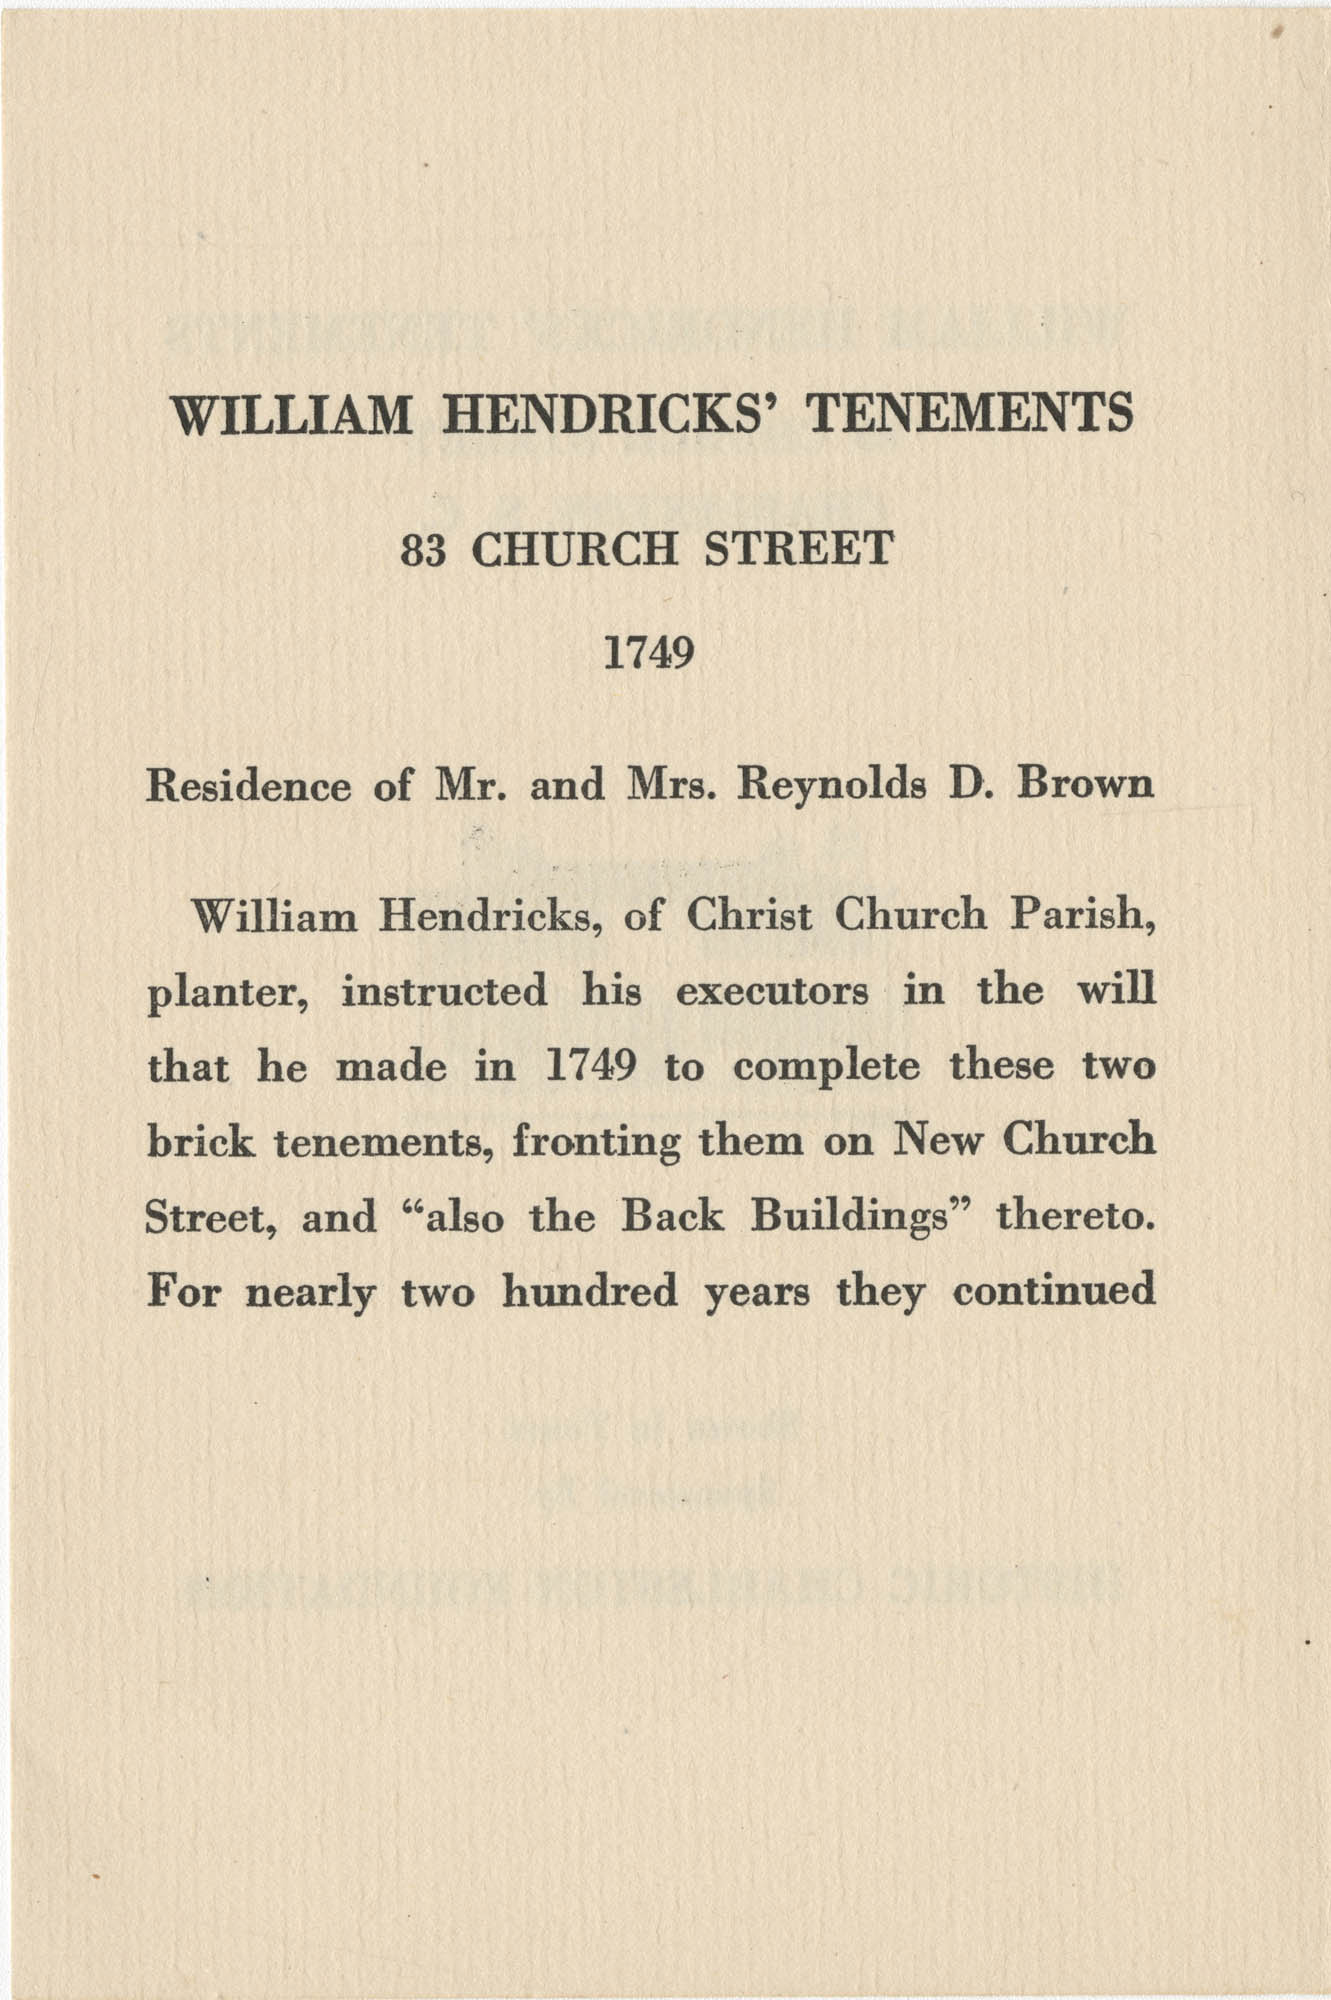 William Hendricks' Tenements Page 1